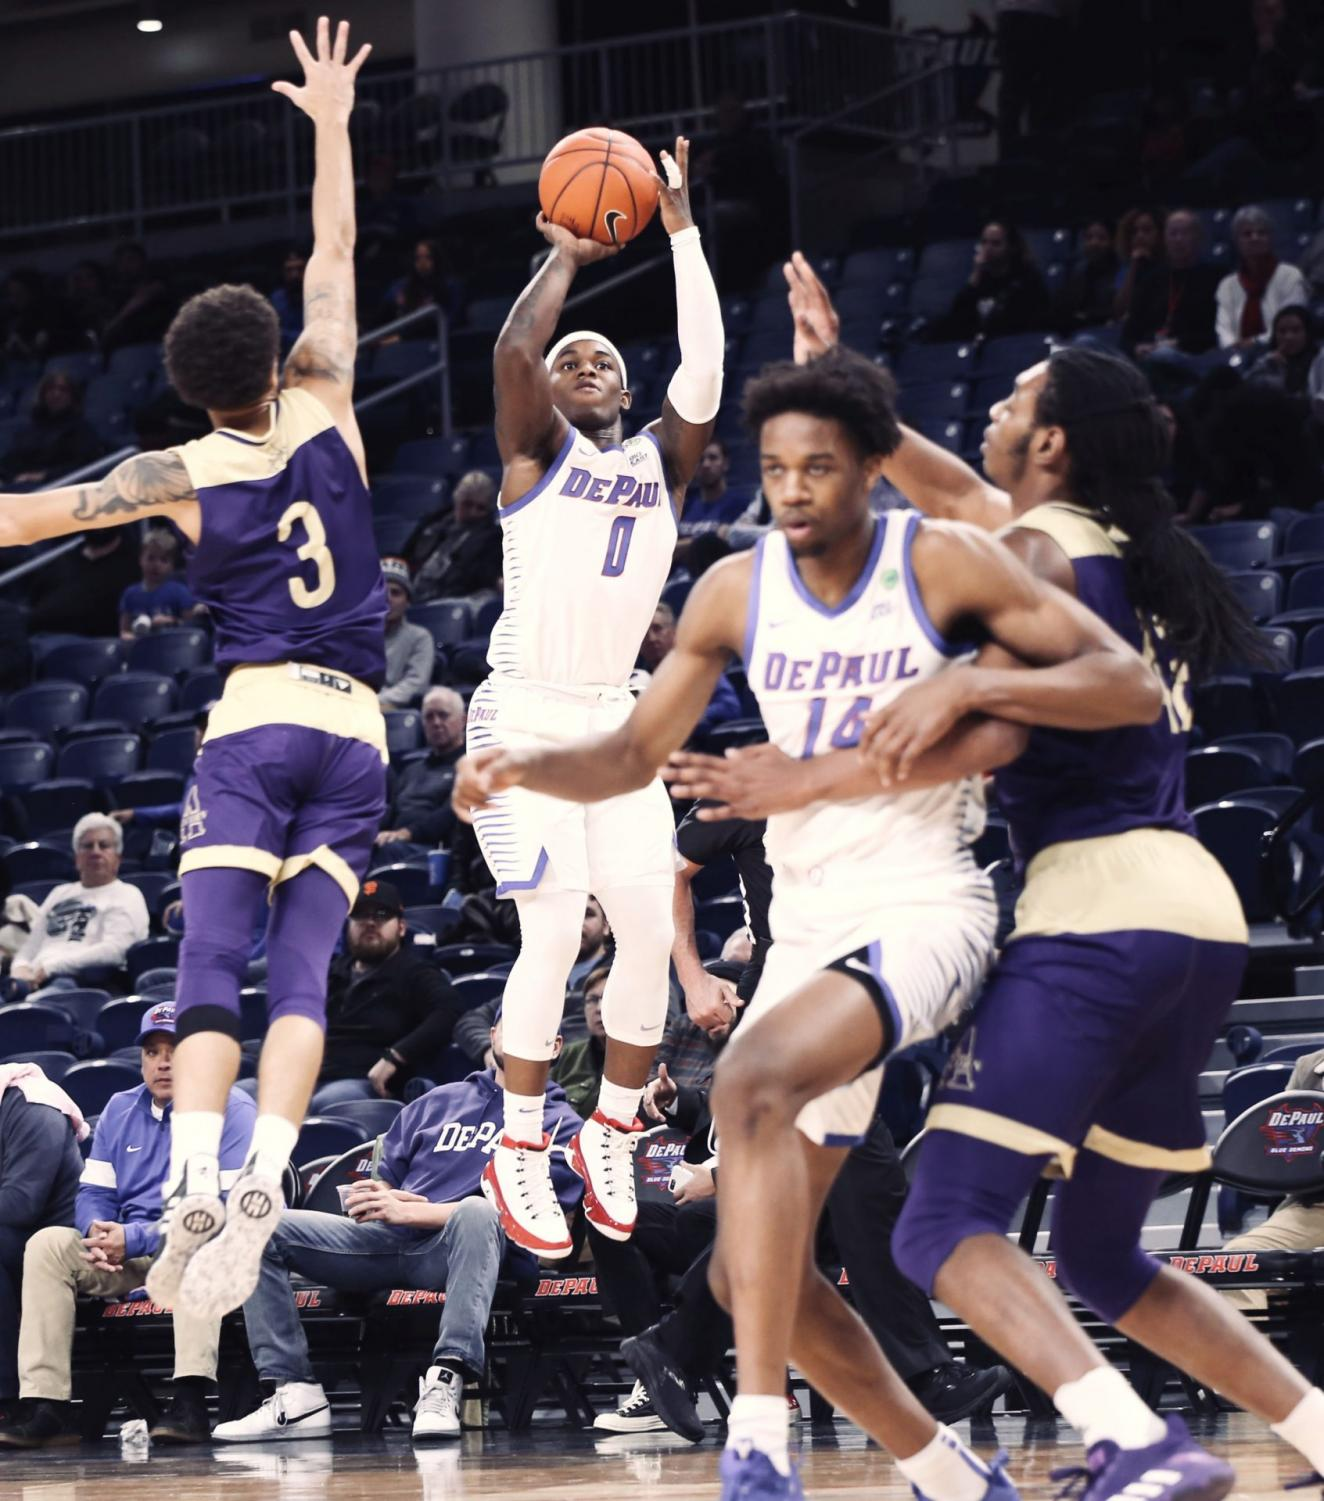 DePaul freshman guard Markese Jacobs attempts a 3-point shot against Alcorn State Tuesday night at Wintrust Arena.